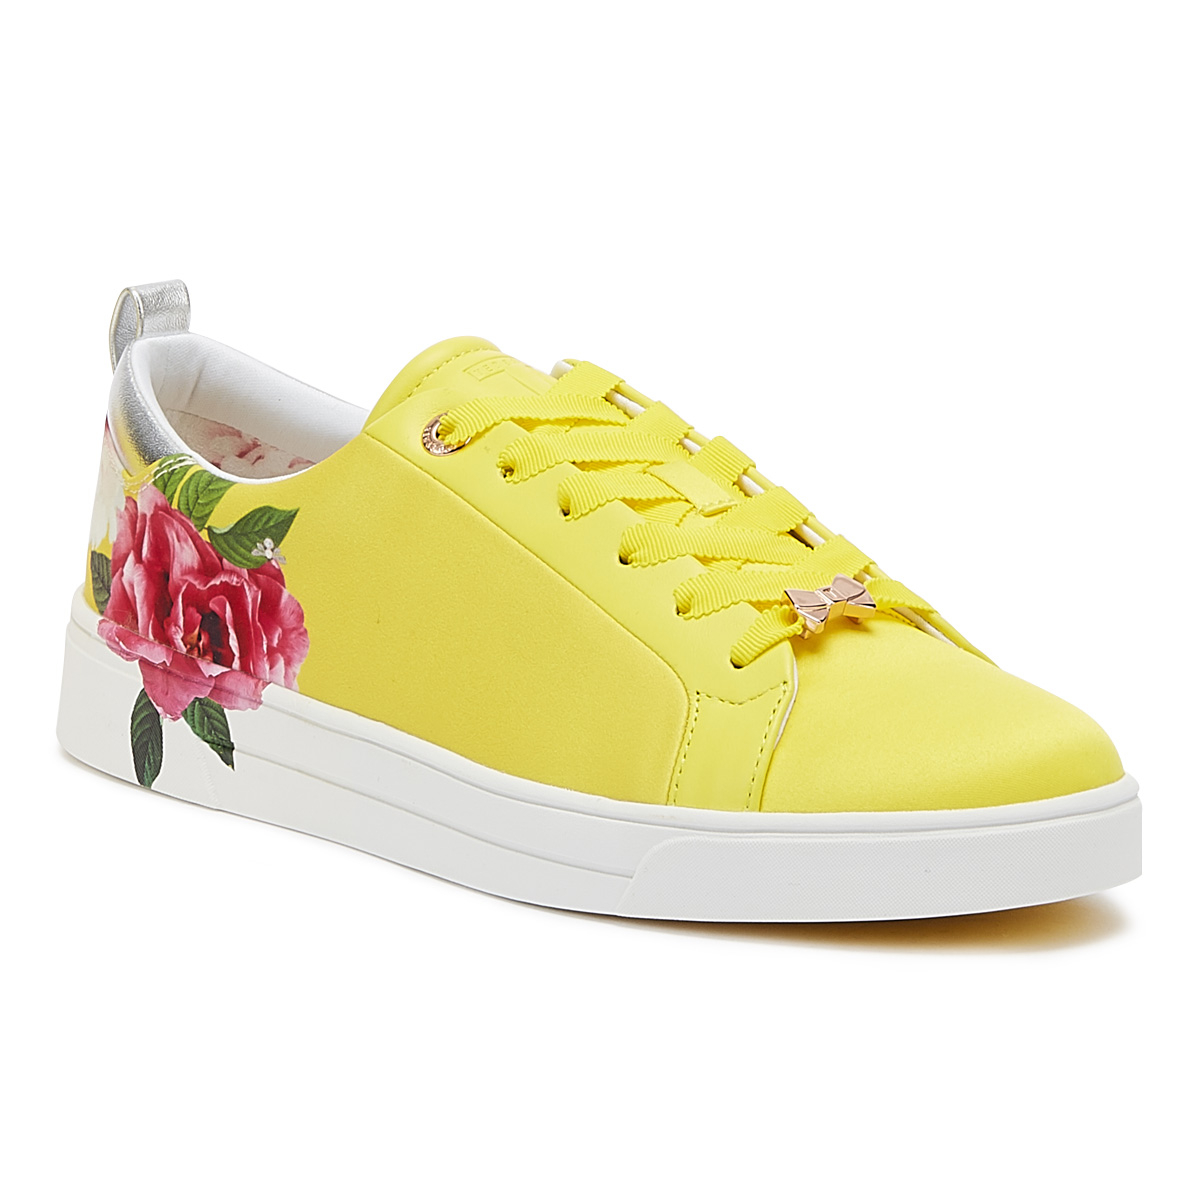 Details about Ted Baker Rialy Magnificent Womens Yellow Satin Trainers Sport Casual Shoes